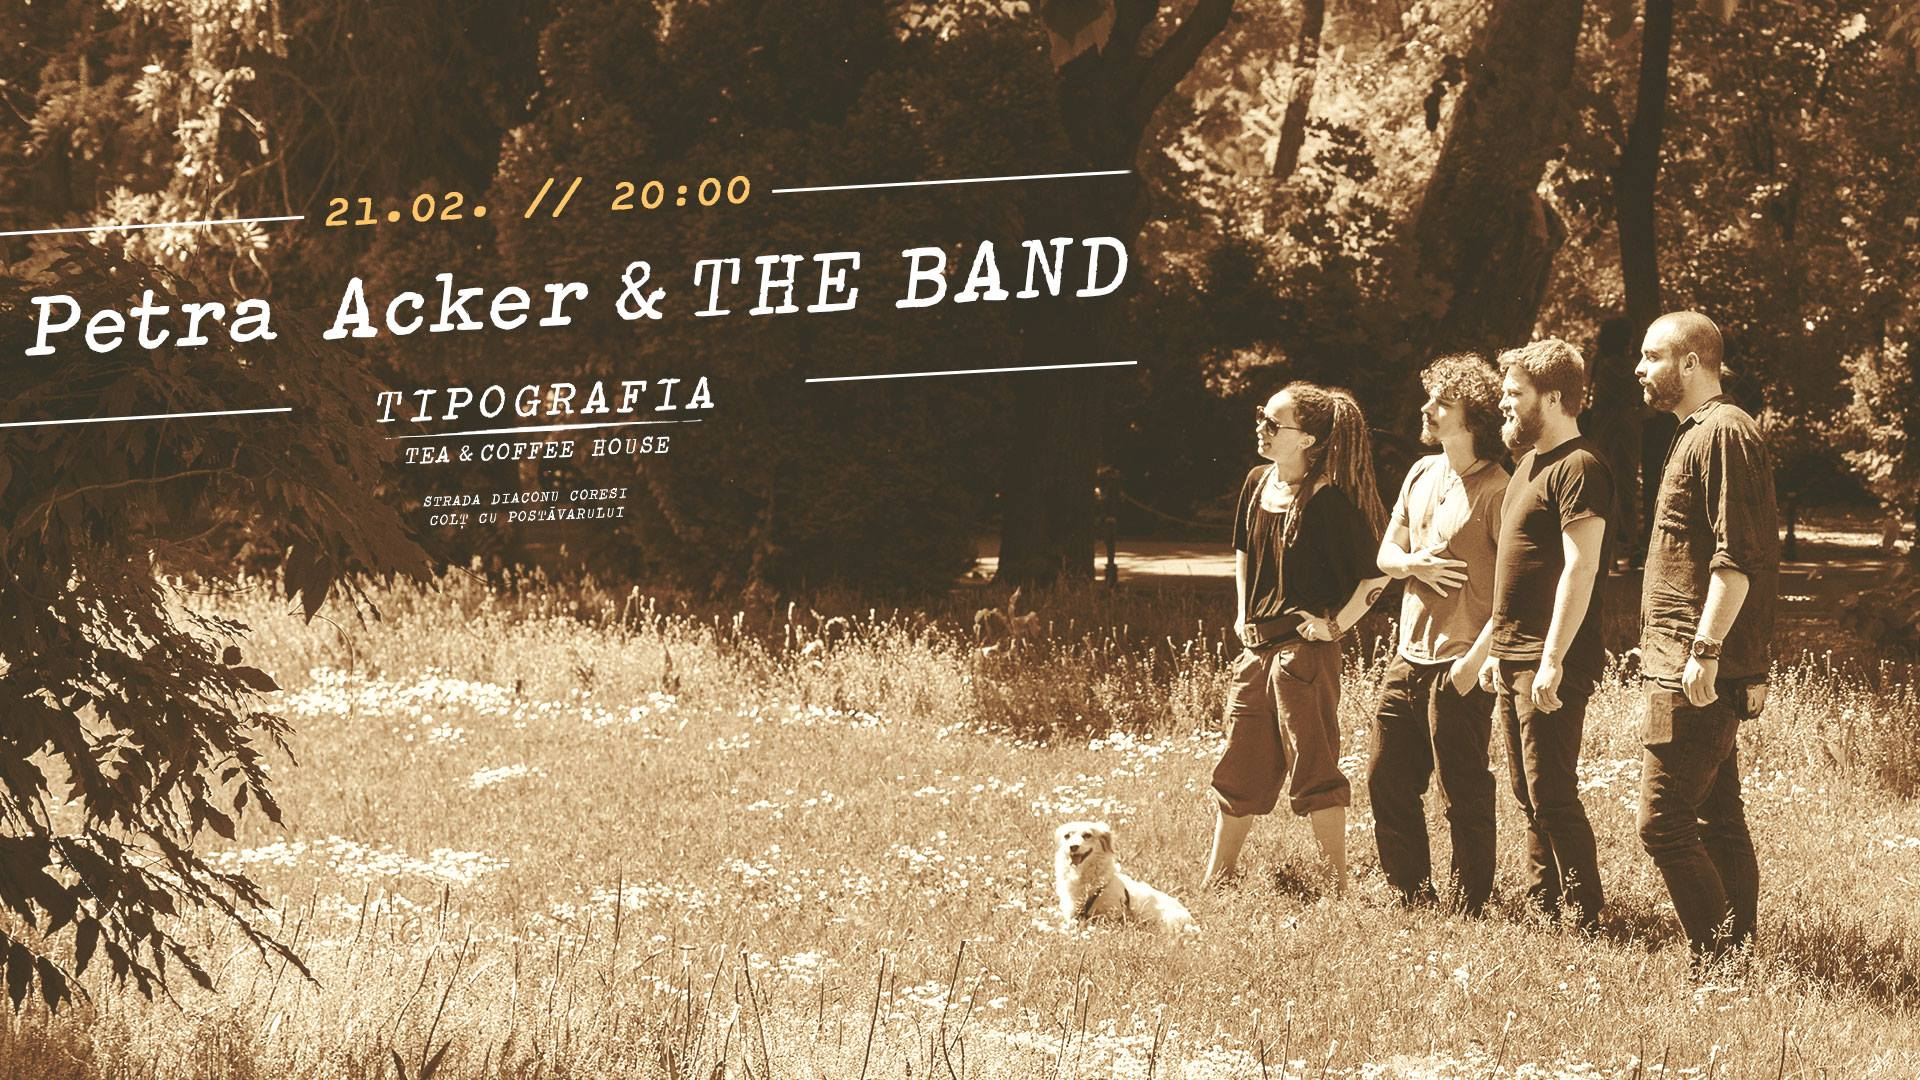 Petra Acker & the BAND - Tipografia